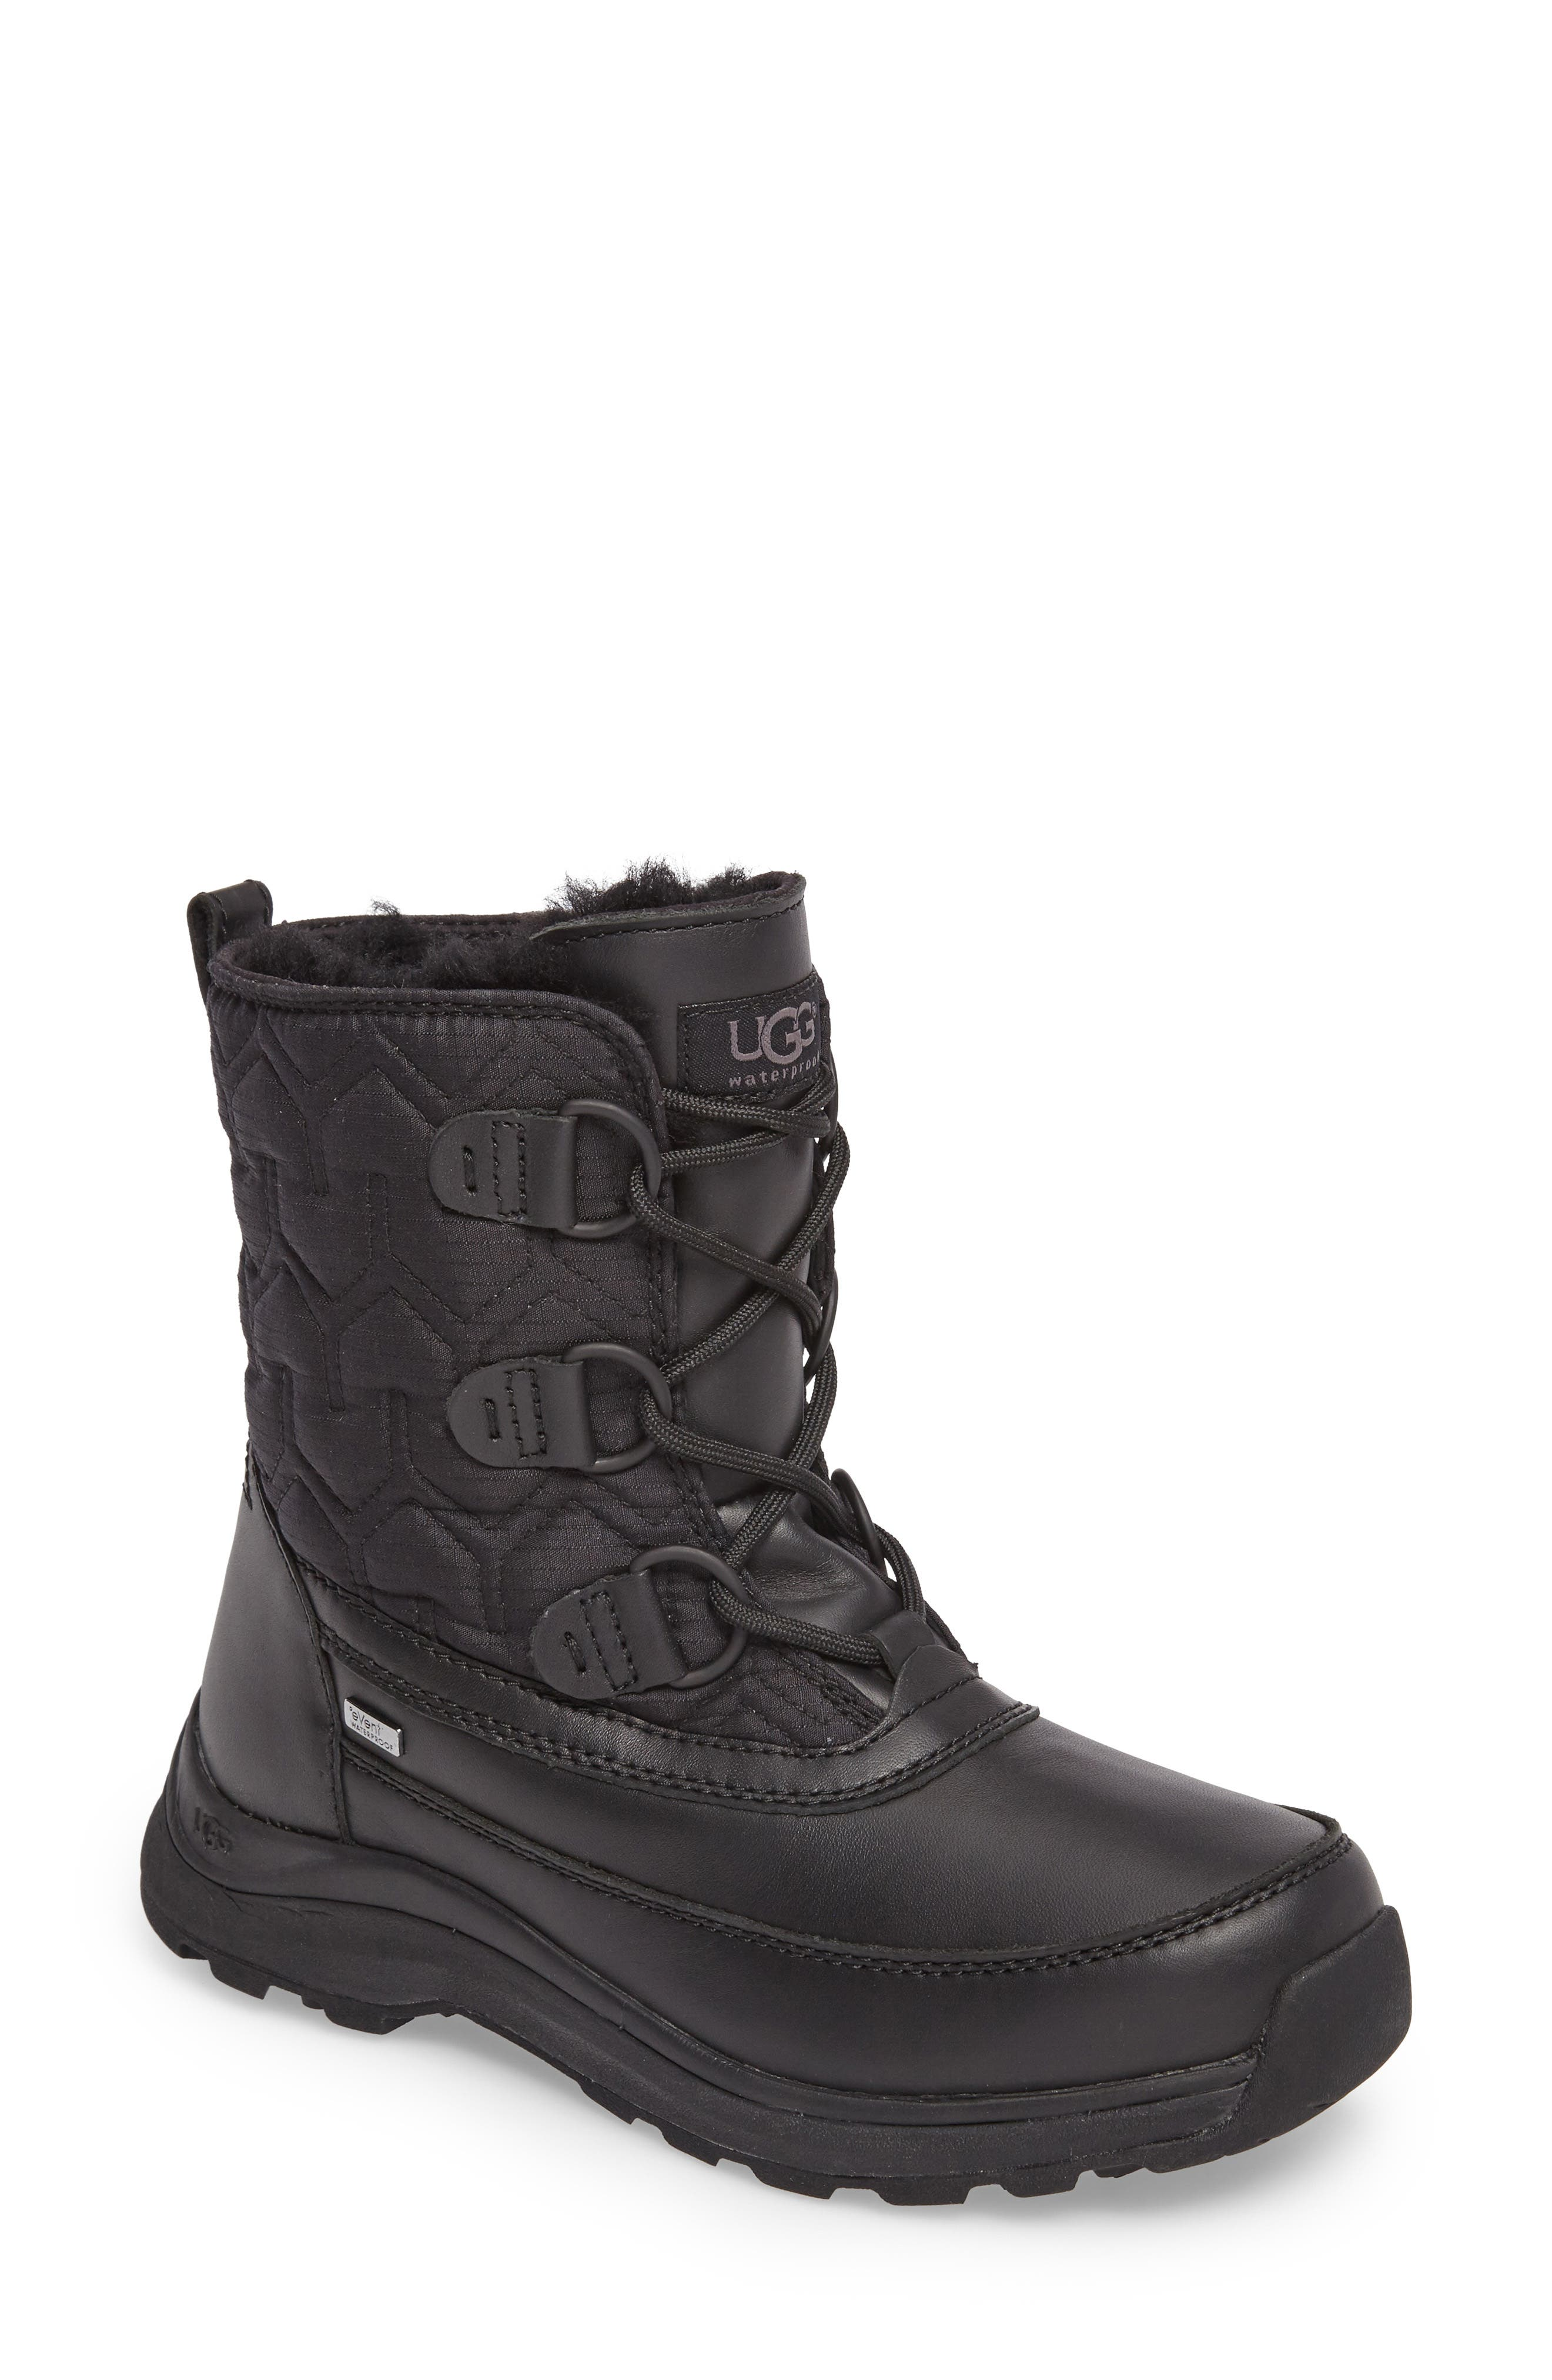 Lachlan Waterproof Insulated Snow Boot,                         Main,                         color, 001